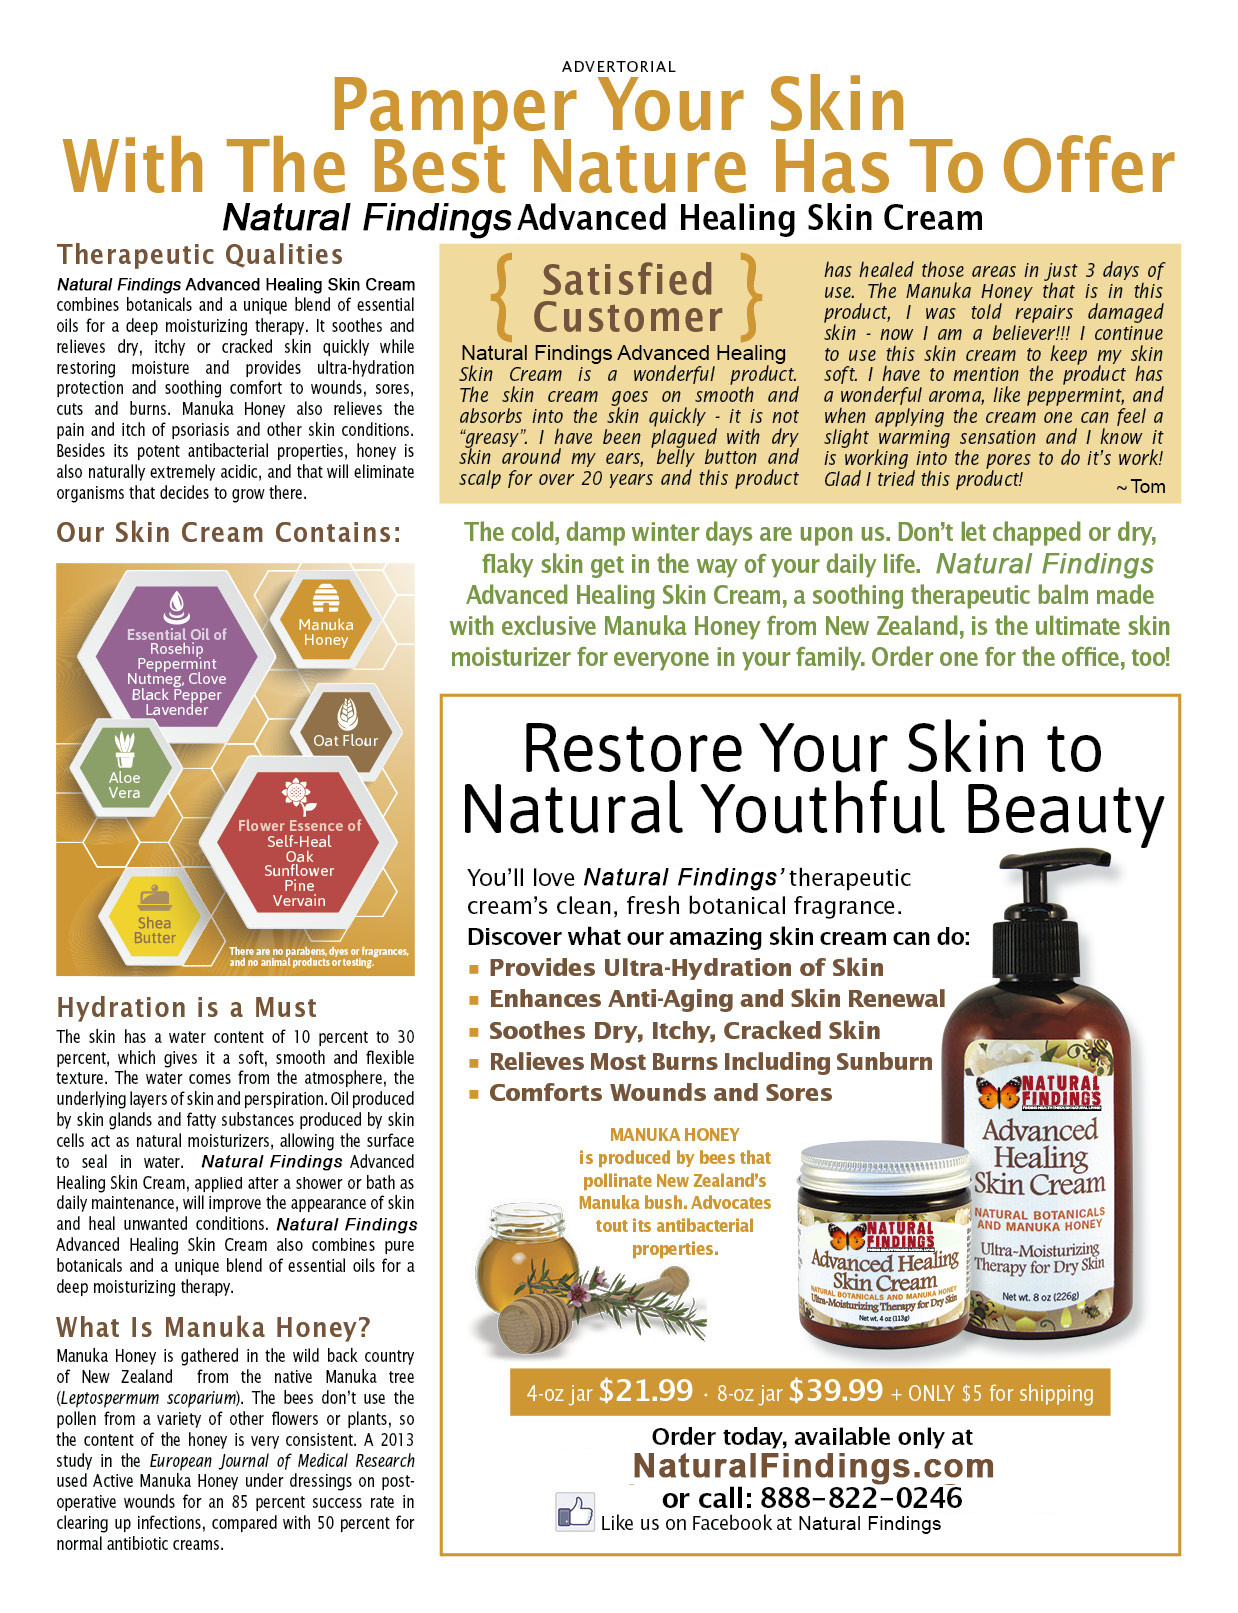 Natural Findings Advanced Healing Skin Cream combines botanicals and a unique blend of essential oils for a deep moisturizing therapy.